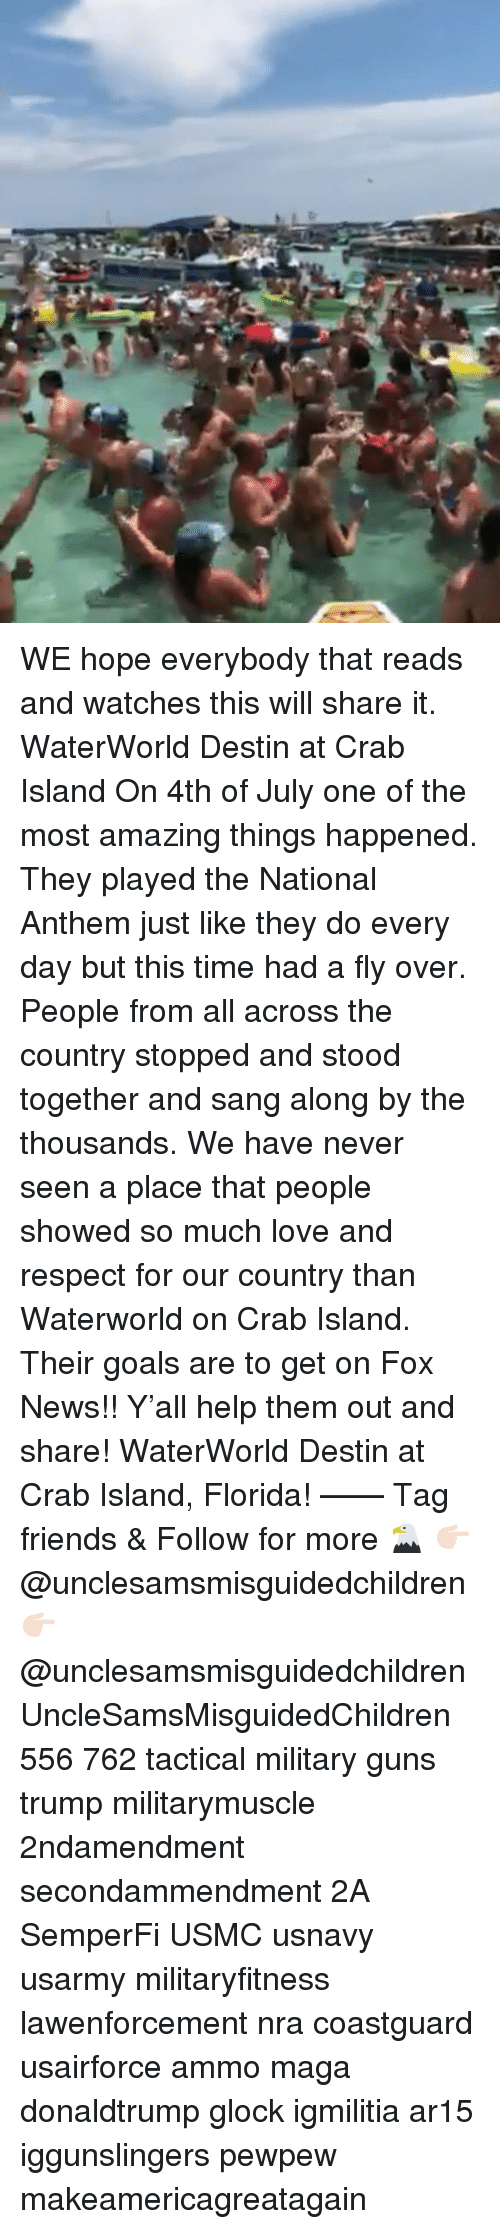 Friends, Goals, and Guns: WE hope everybody that reads and watches this will share it. WaterWorld Destin at Crab Island On 4th of July one of the most amazing things happened. They played the National Anthem just like they do every day but this time had a fly over. People from all across the country stopped and stood together and sang along by the thousands. We have never seen a place that people showed so much love and respect for our country than Waterworld on Crab Island. Their goals are to get on Fox News!! Y'all help them out and share! WaterWorld Destin at Crab Island, Florida! —— Tag friends & Follow for more 🦅 👉🏻 @unclesamsmisguidedchildren 👉🏻 @unclesamsmisguidedchildren UncleSamsMisguidedChildren 556 762 tactical military guns trump militarymuscle 2ndamendment secondammendment 2A SemperFi USMC usnavy usarmy militaryfitness lawenforcement nra coastguard usairforce ammo maga donaldtrump glock igmilitia ar15 iggunslingers pewpew makeamericagreatagain